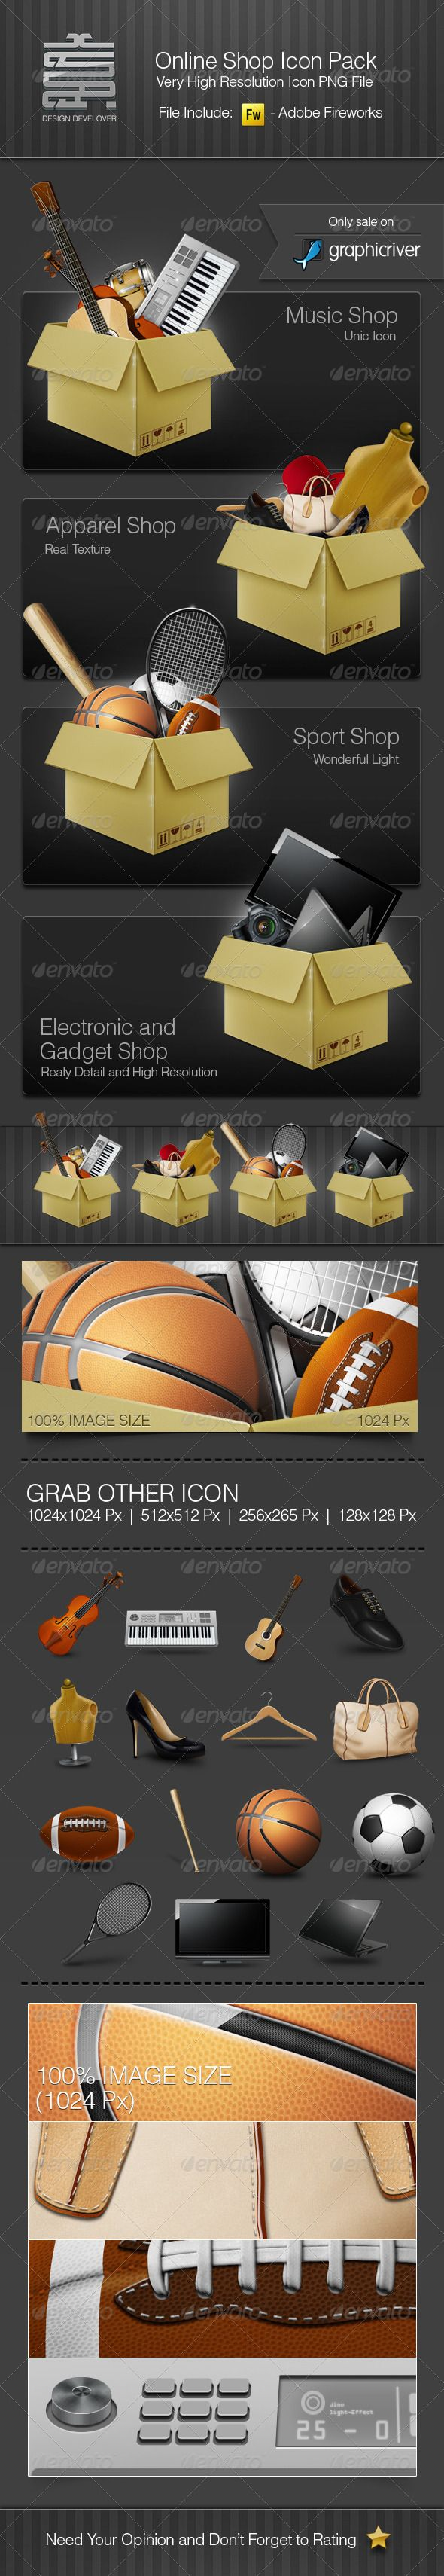 Online Shop Icon Package